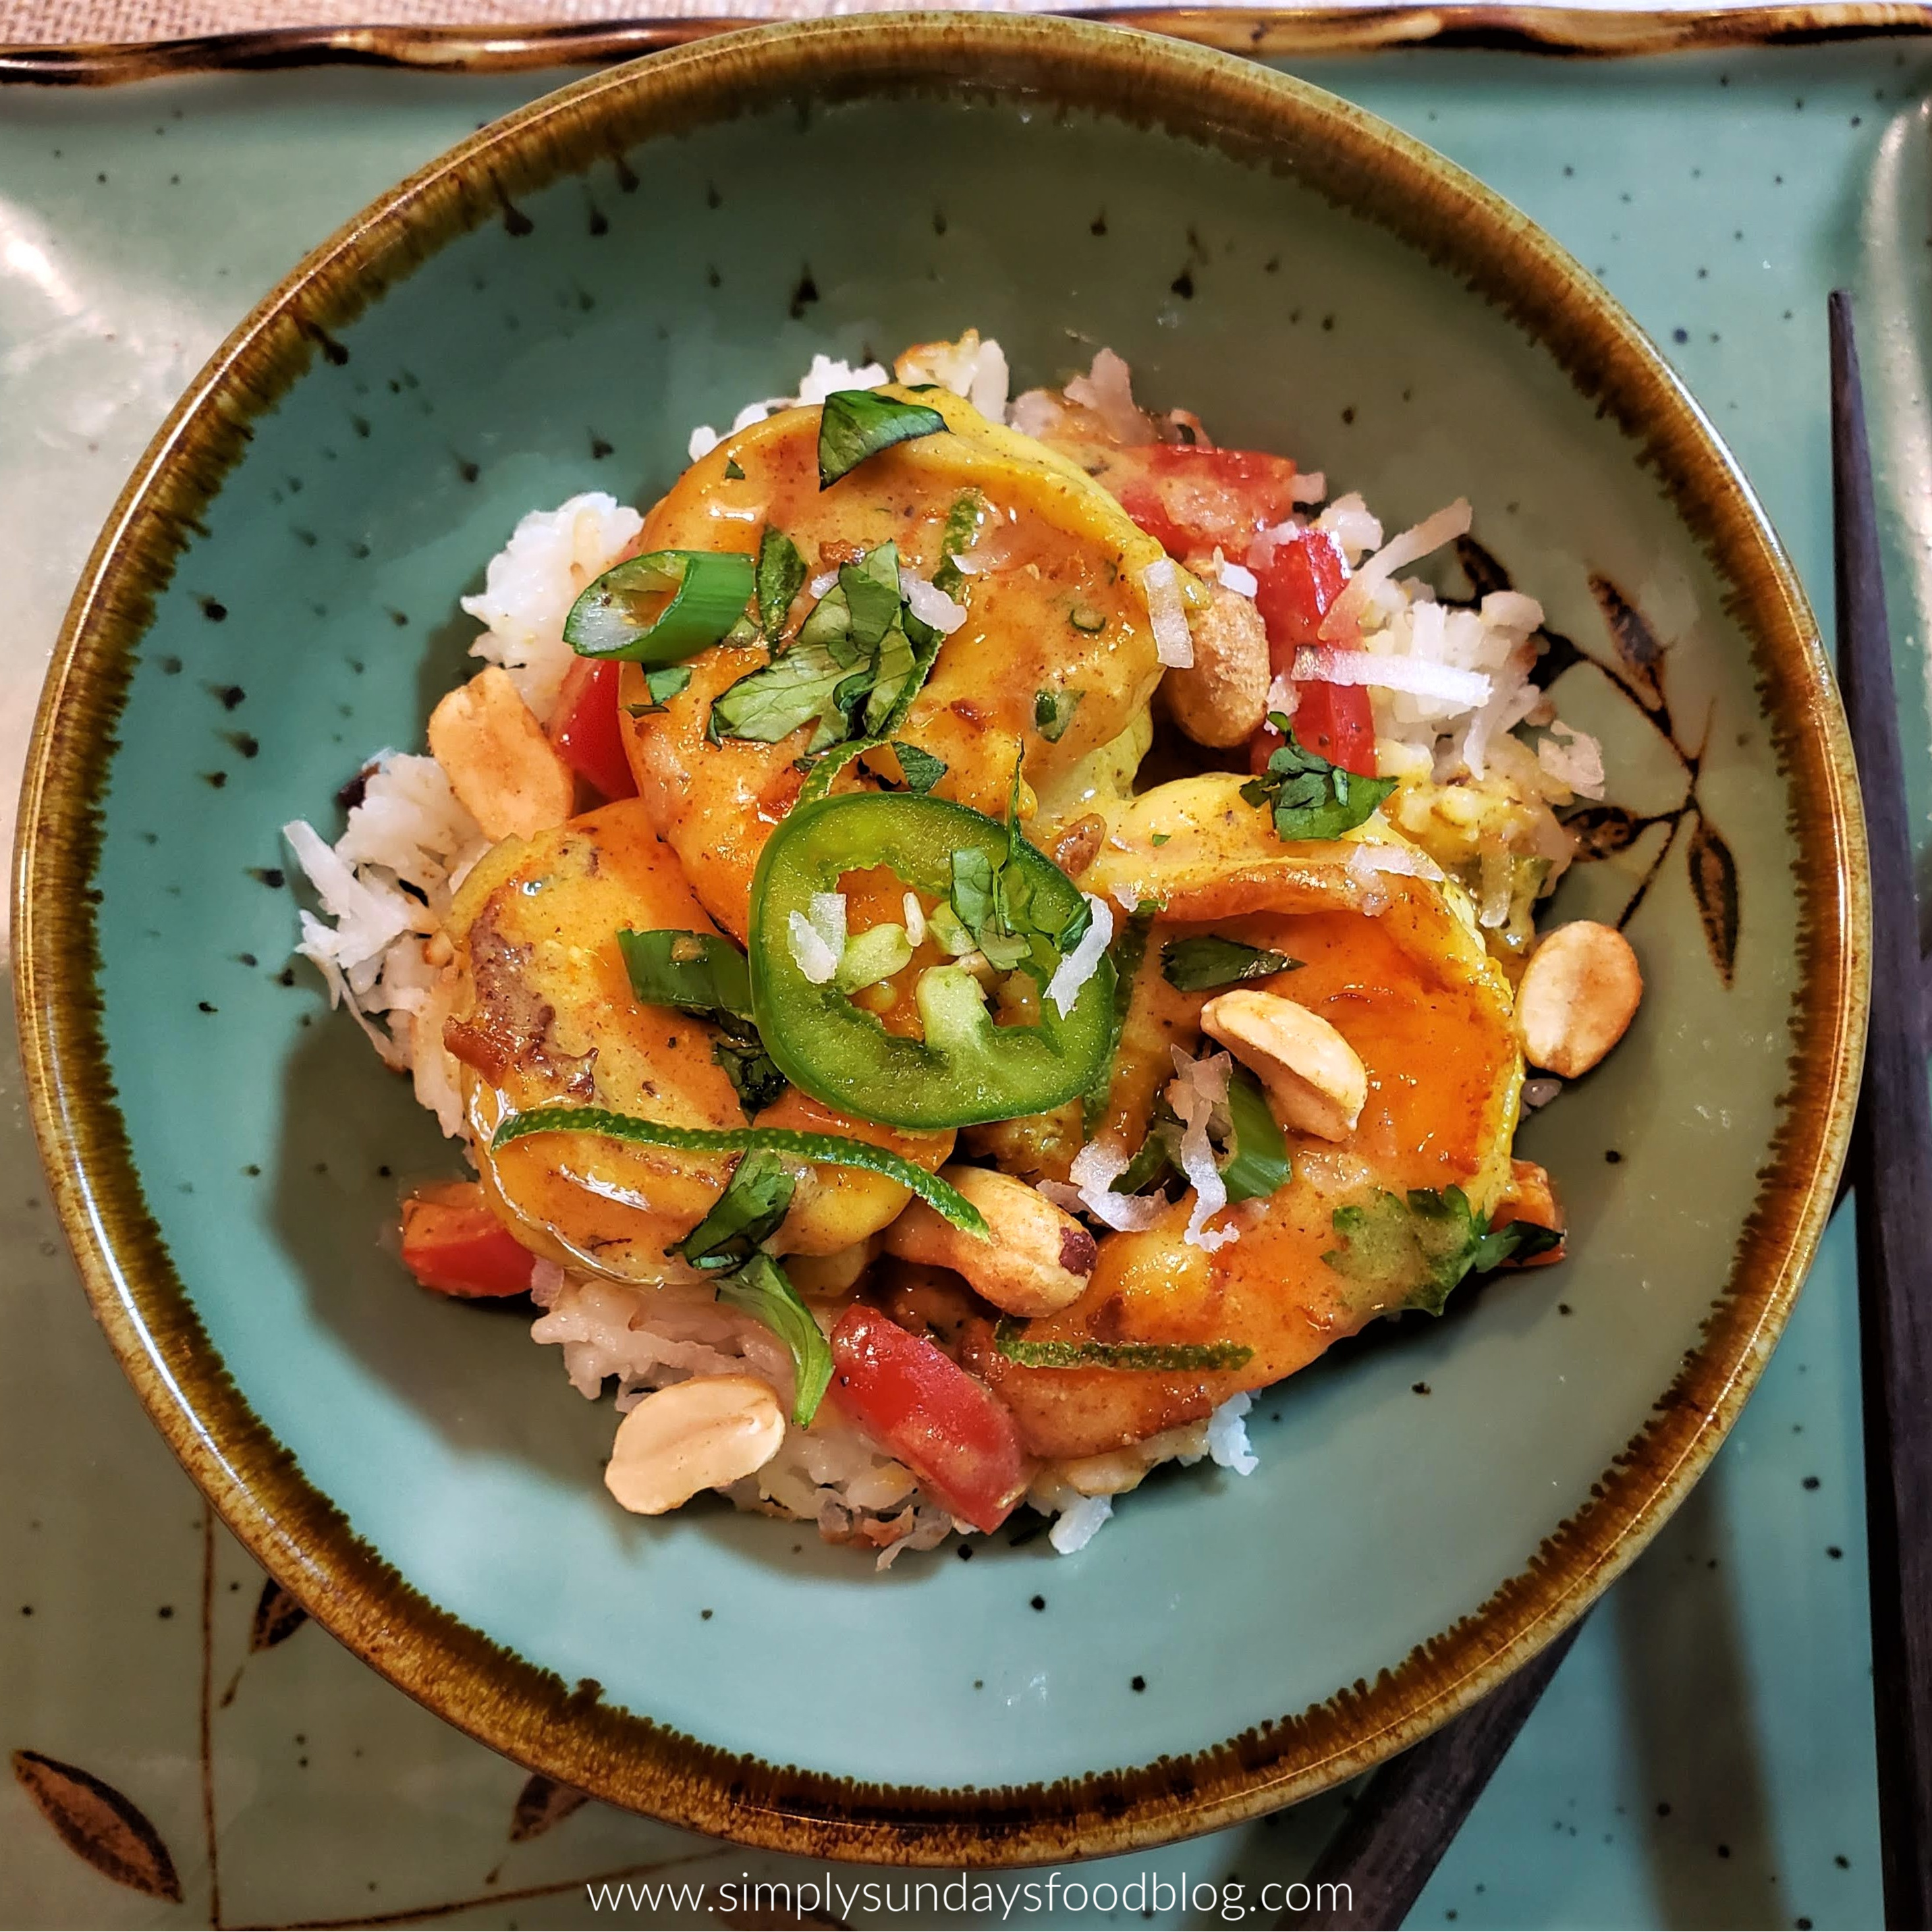 Large pink shrimp, in red curry over white rice topped with green scallions, sliced jalapenos, roasted peanuts, toasted coconut, chopped fresh green basil and cilantro